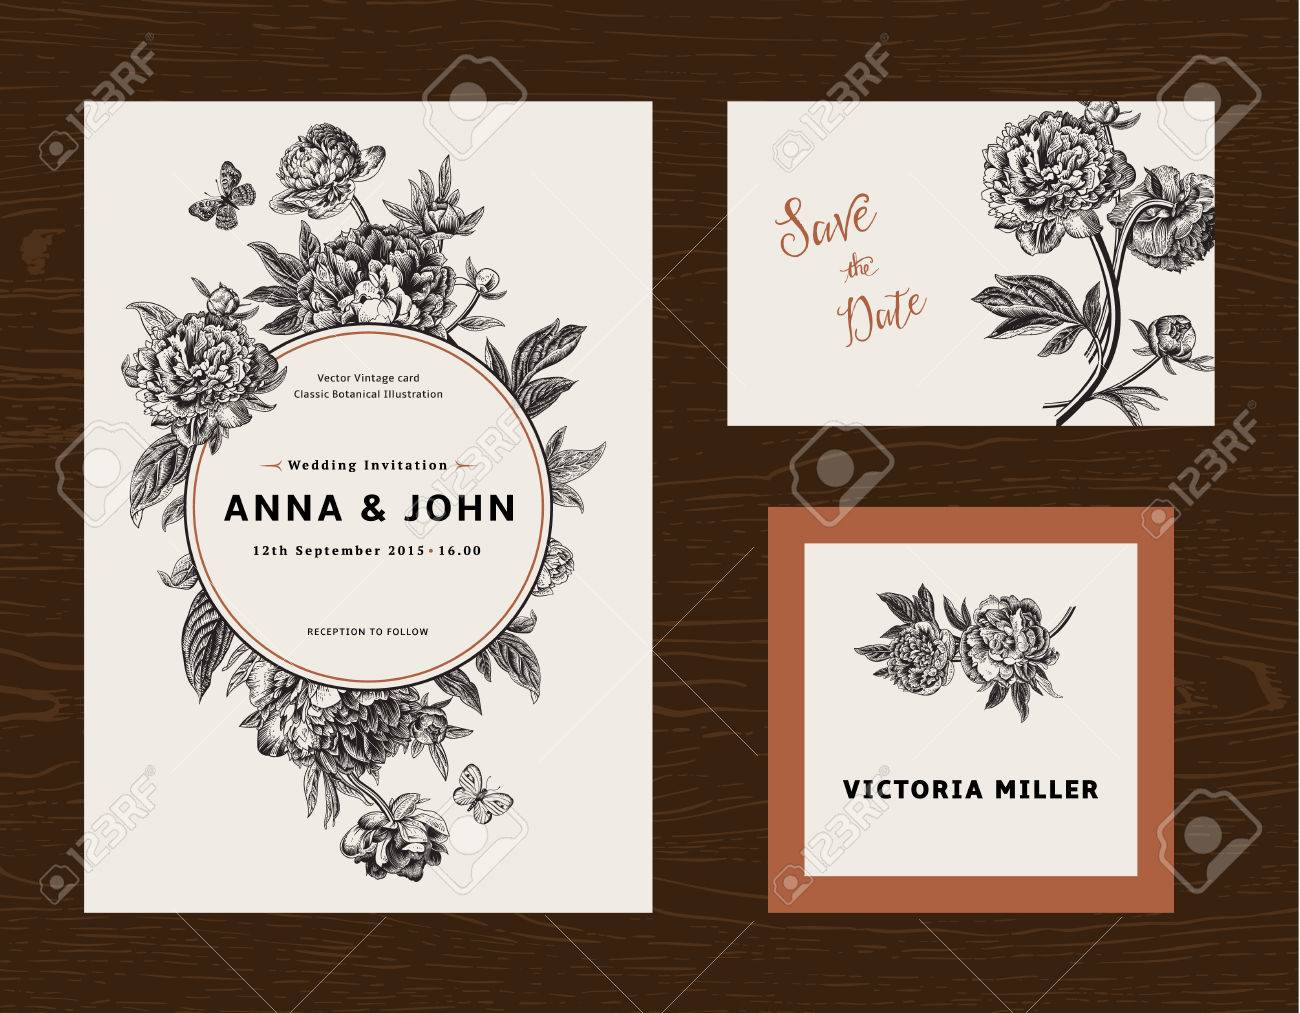 Wedding set. Menu, save the date, guest card. Black and white flowers peonies. Vintage vector illustration. - 50286897